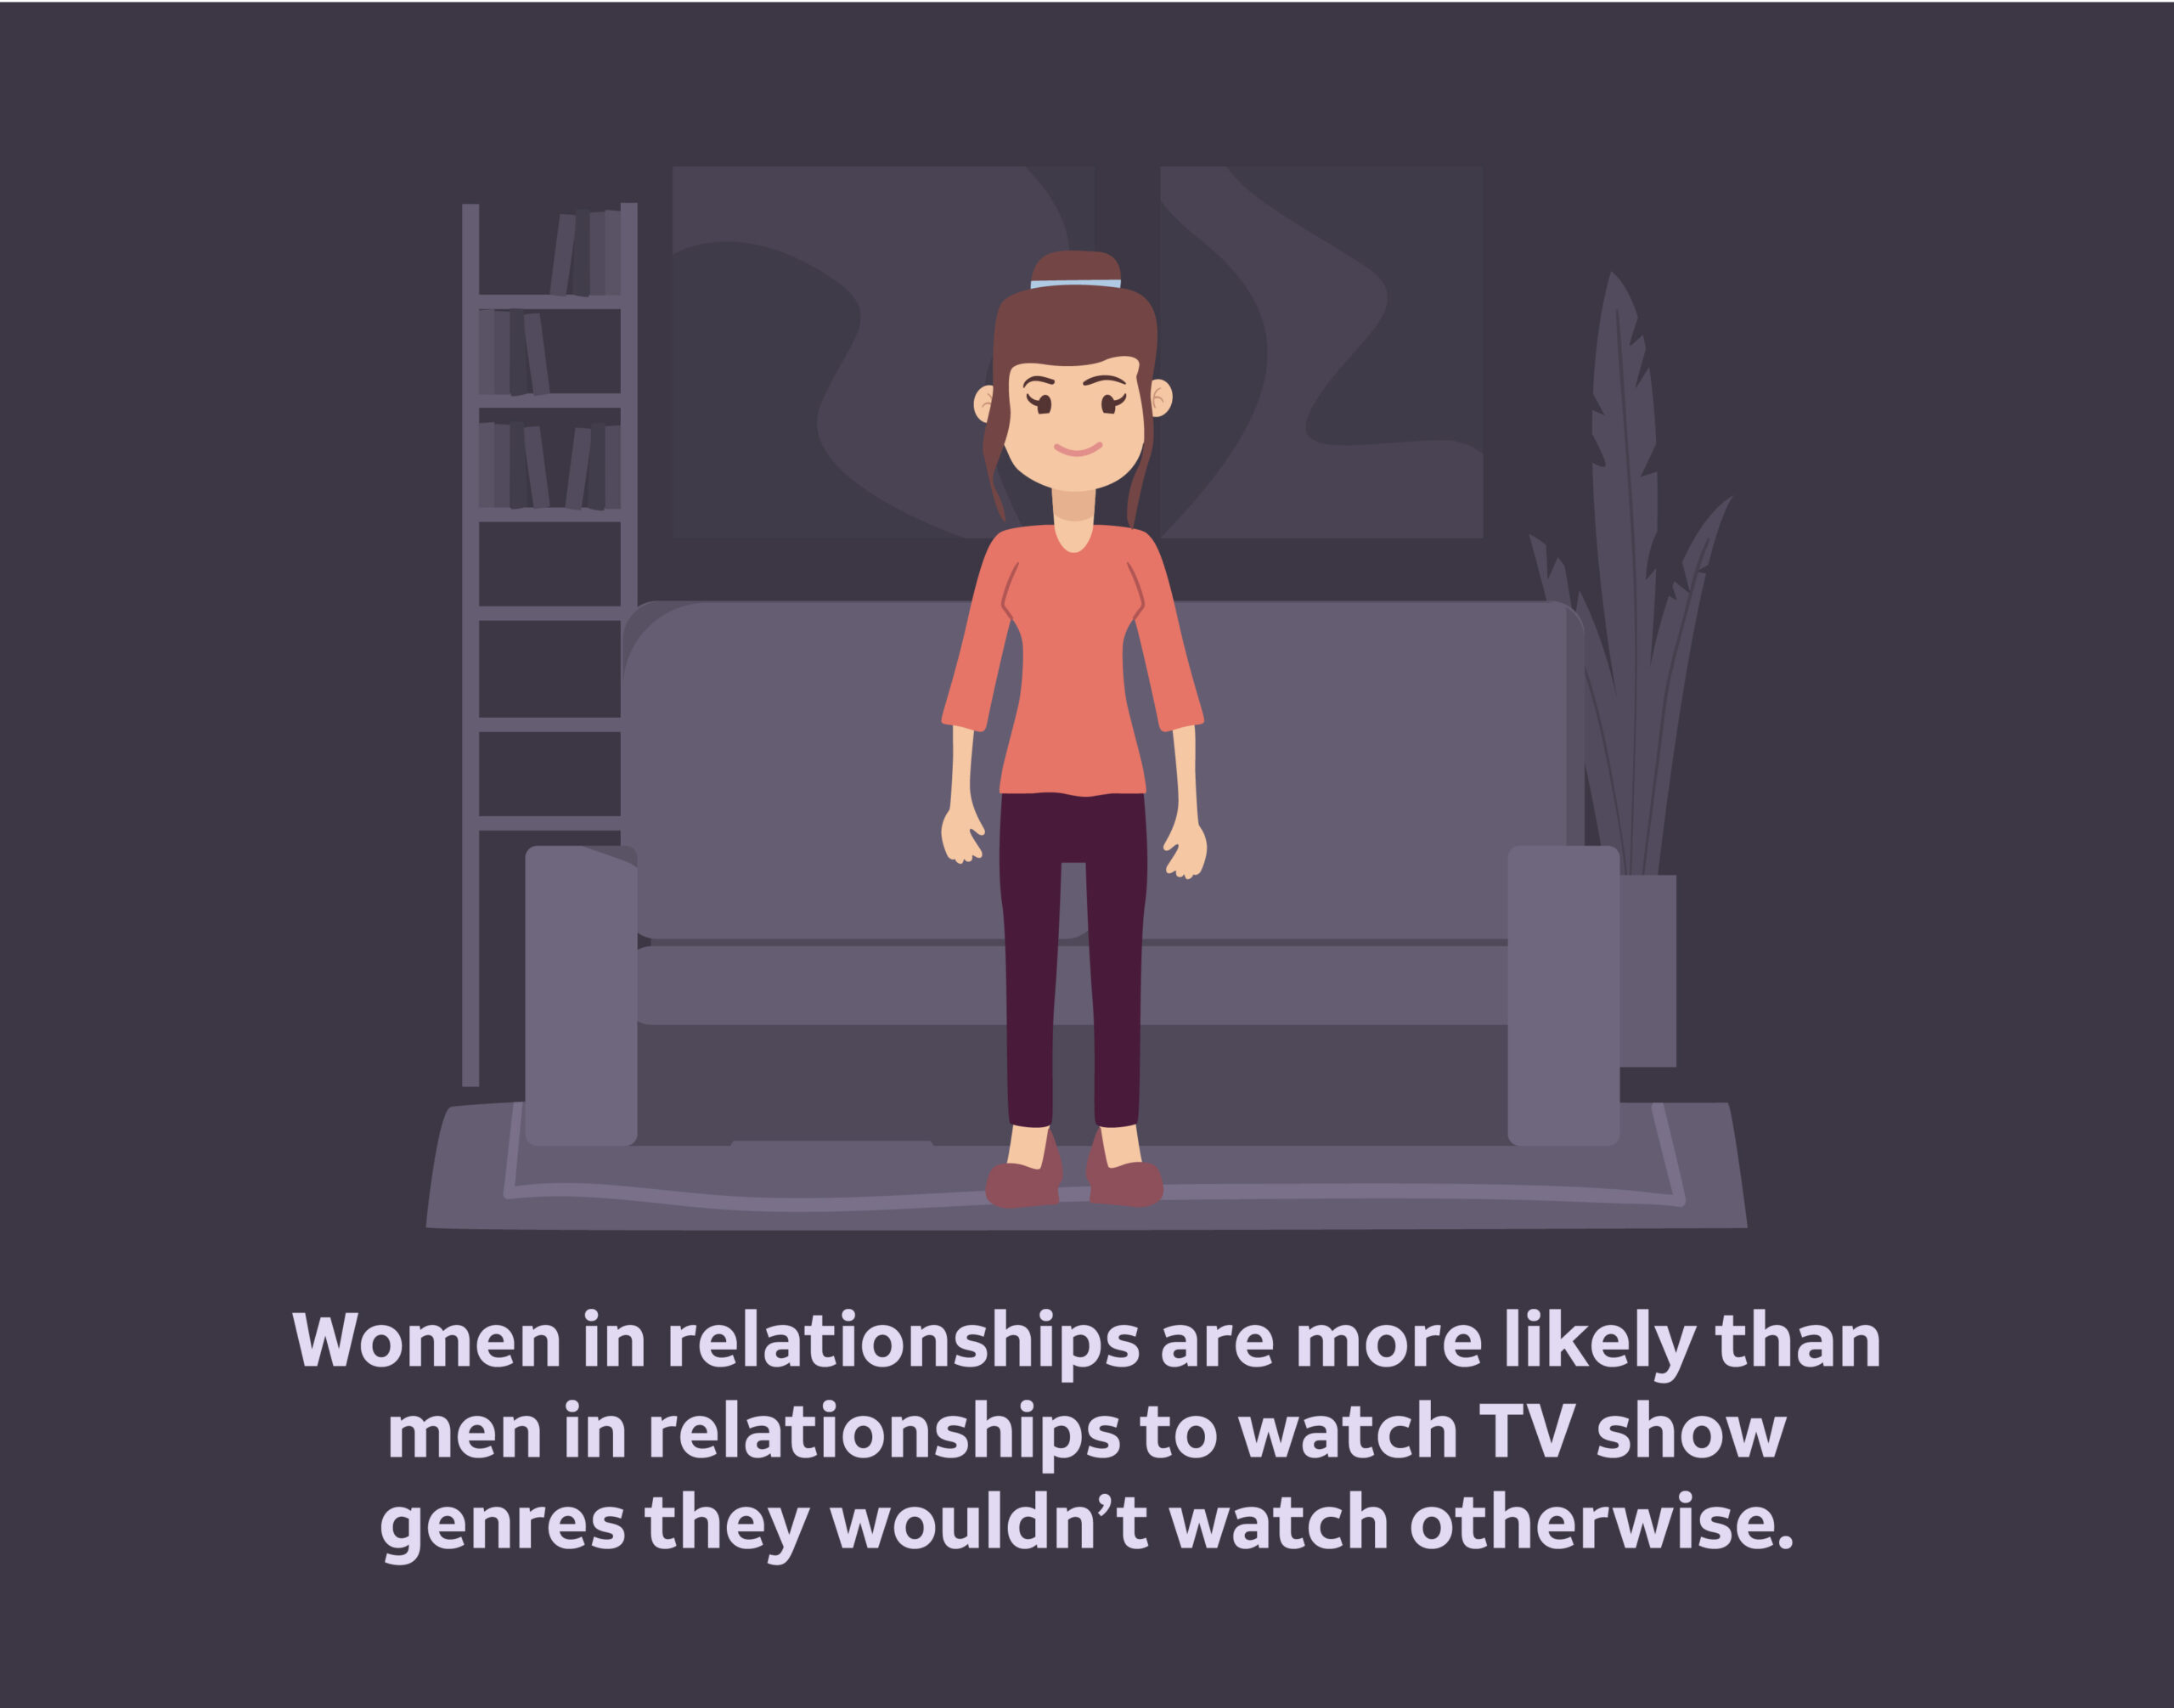 women are more likely than men to watch tv shows they wouldn't normally